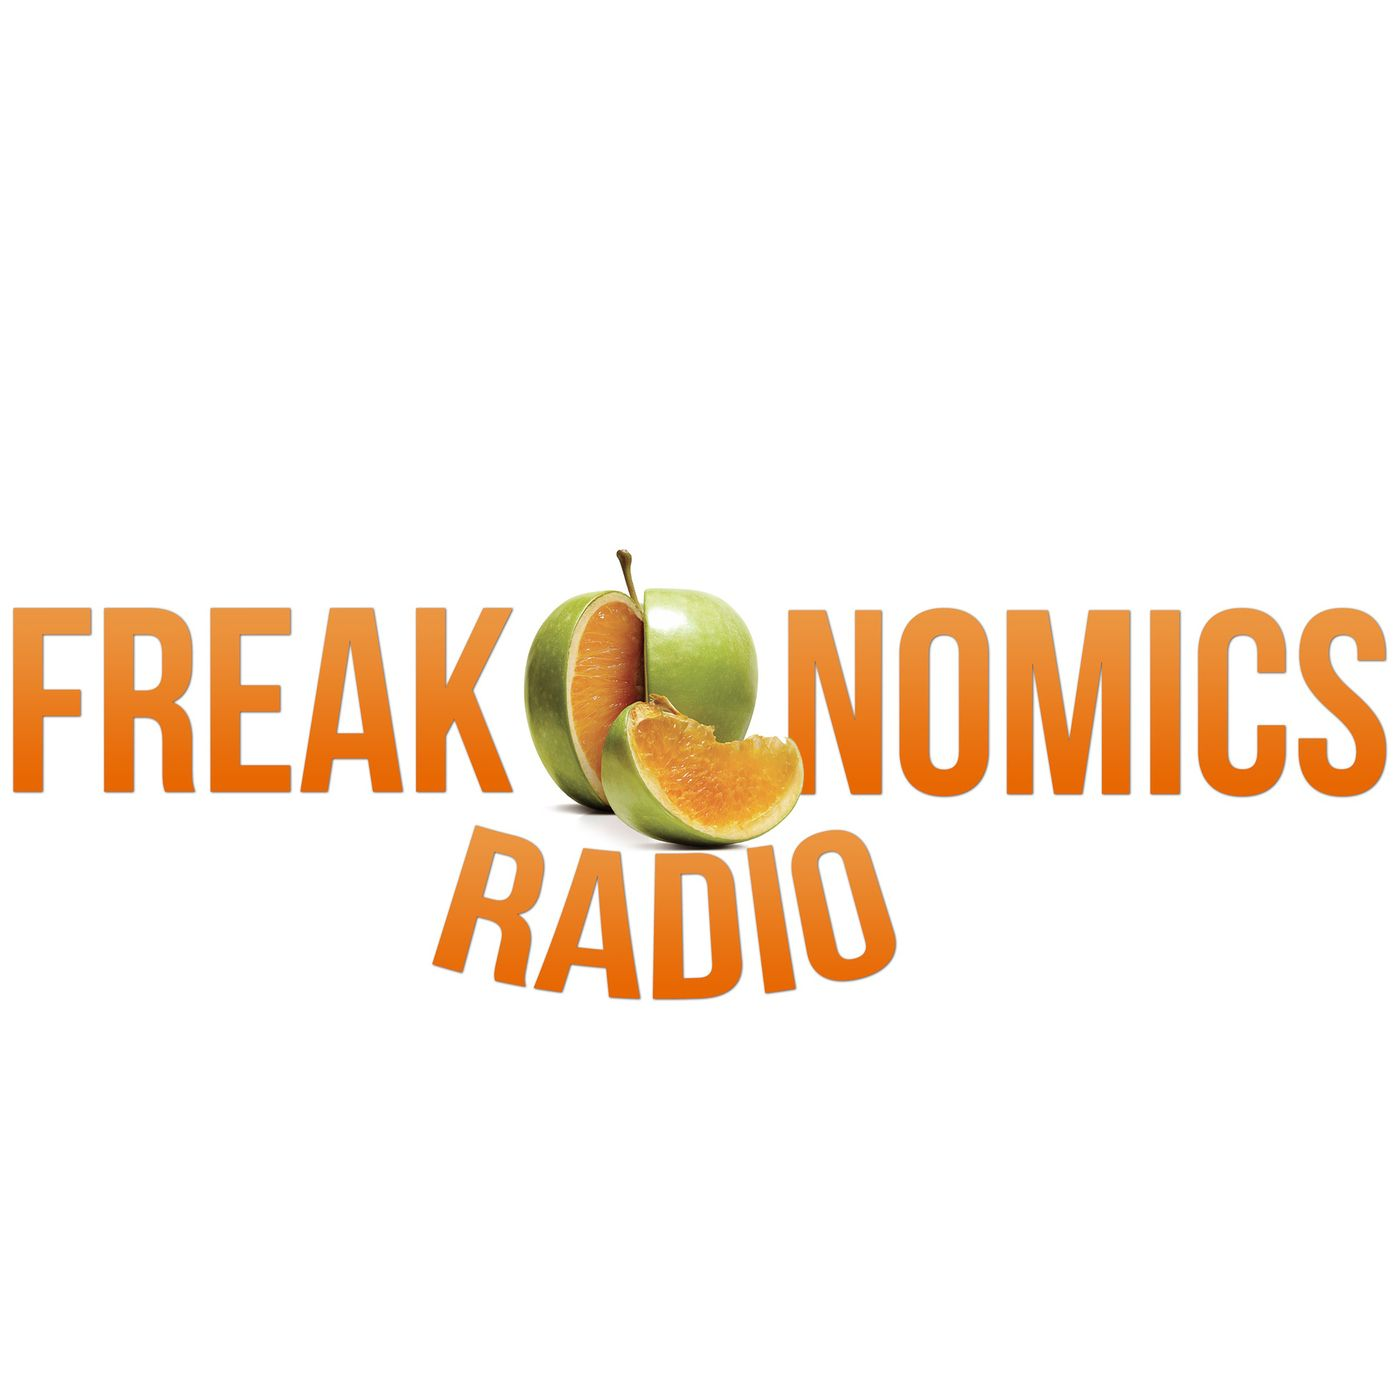 Heartland Newsfeed Radio Network: Freakonomics Radio (July 20, 2019)